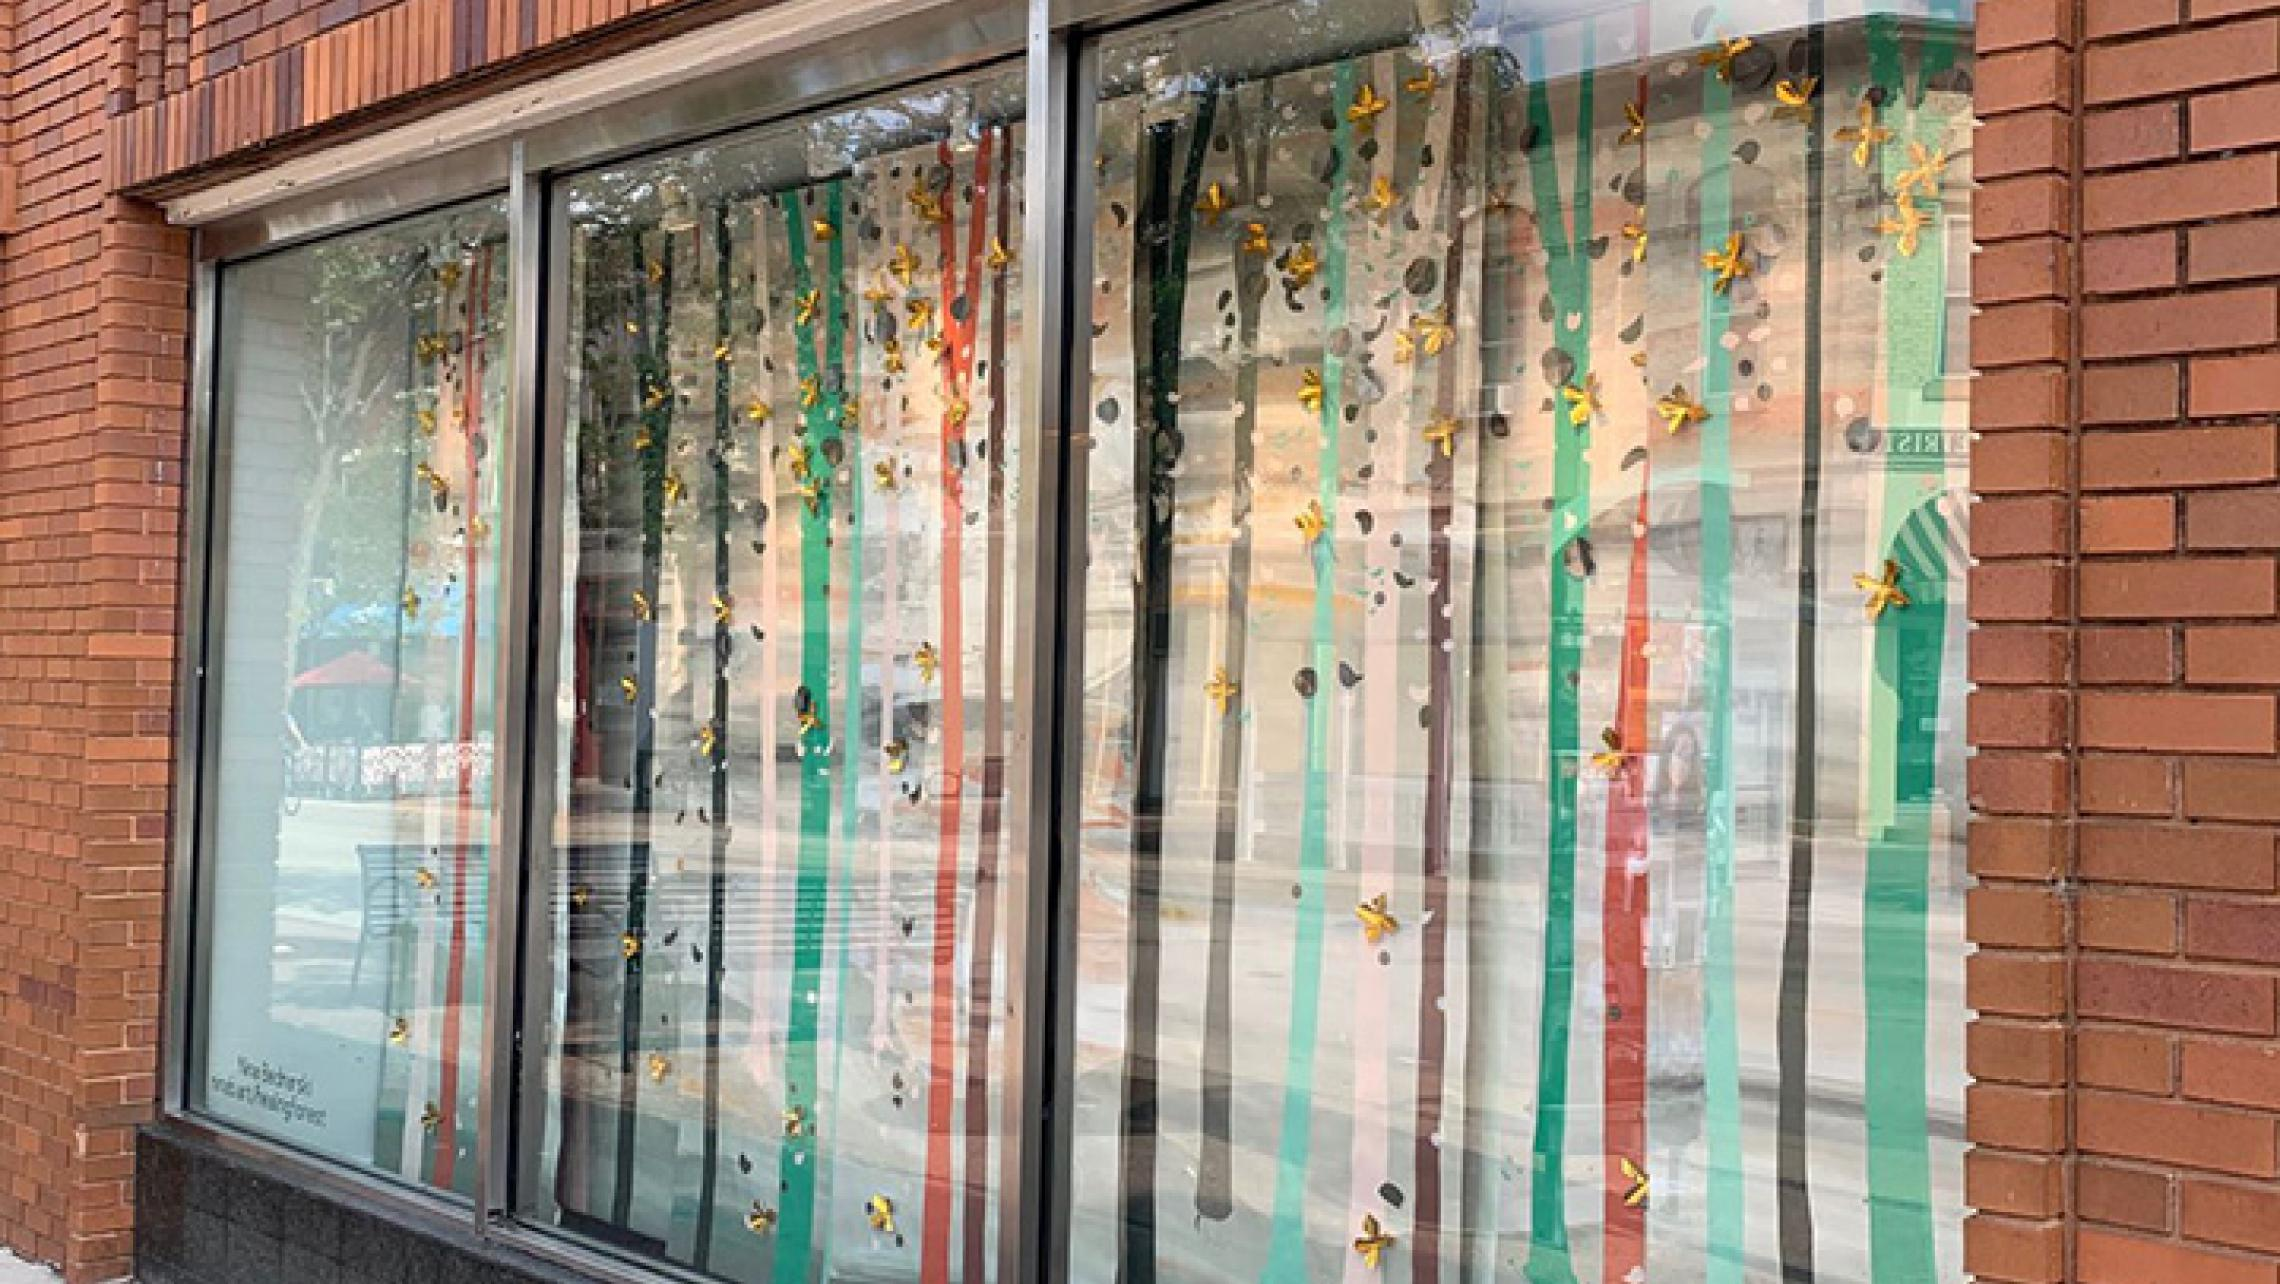 Art installation by Nina Bednarski at ULI's commercial property at 341 State Street